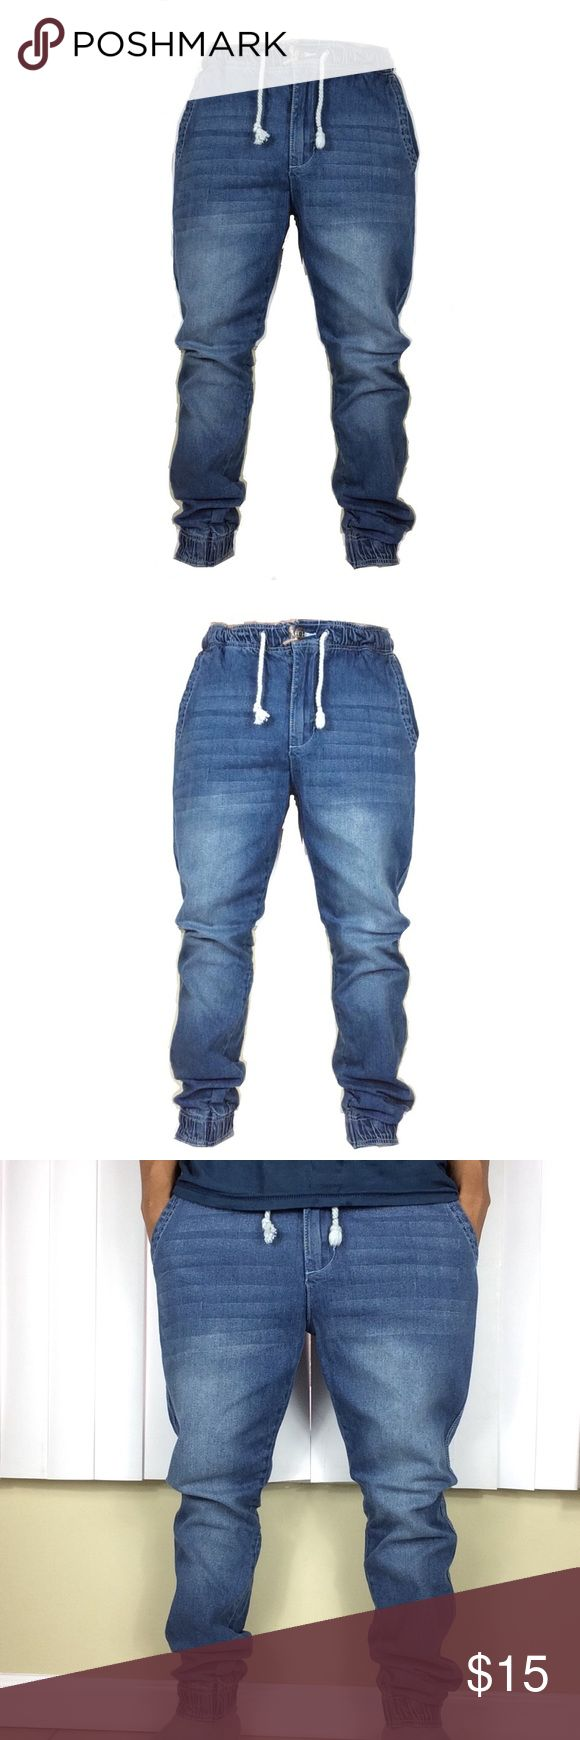 Mens stretch denim slim fit drawstring joggers nwt new with tags mens nwt Light wash denim Jean joggers Stretch denim Spandex waistband for better fit comfort Slim fitted  98% cotton 2% spandex Inseam 32 Fashionable 2 side pockets and one back pocket Features zipper fly Jeans Slim